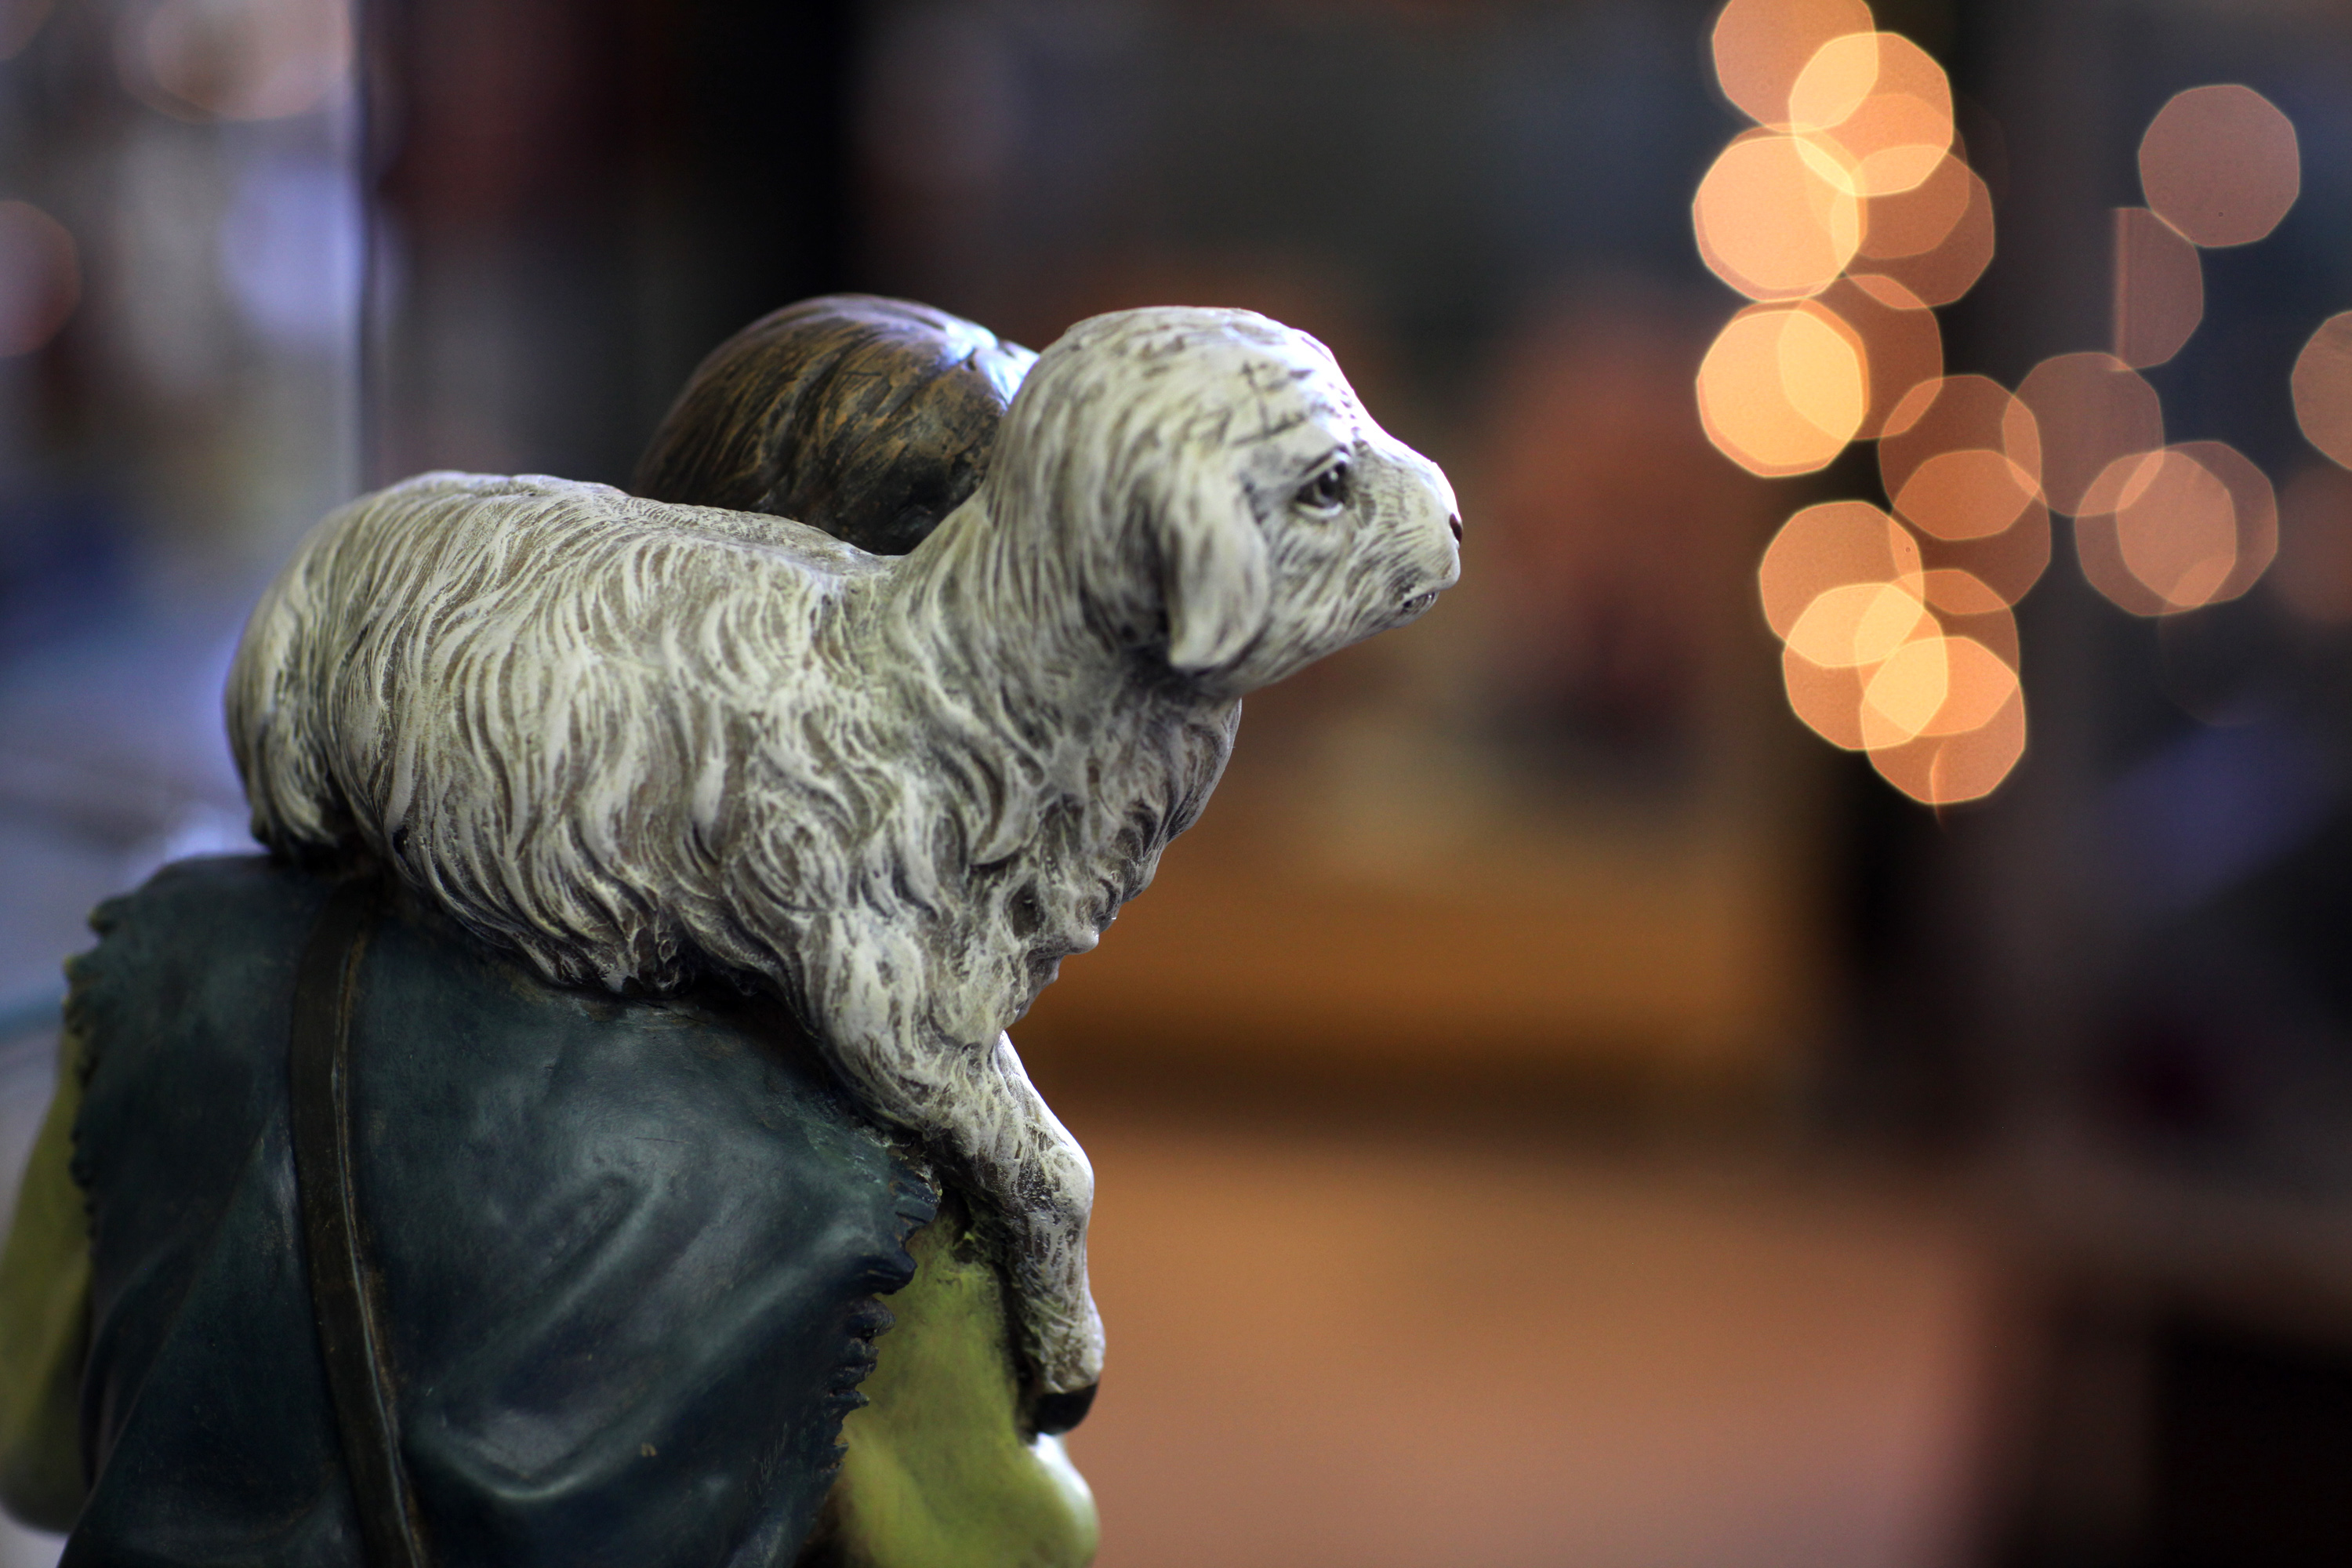 A shepherd from a nativity scene.